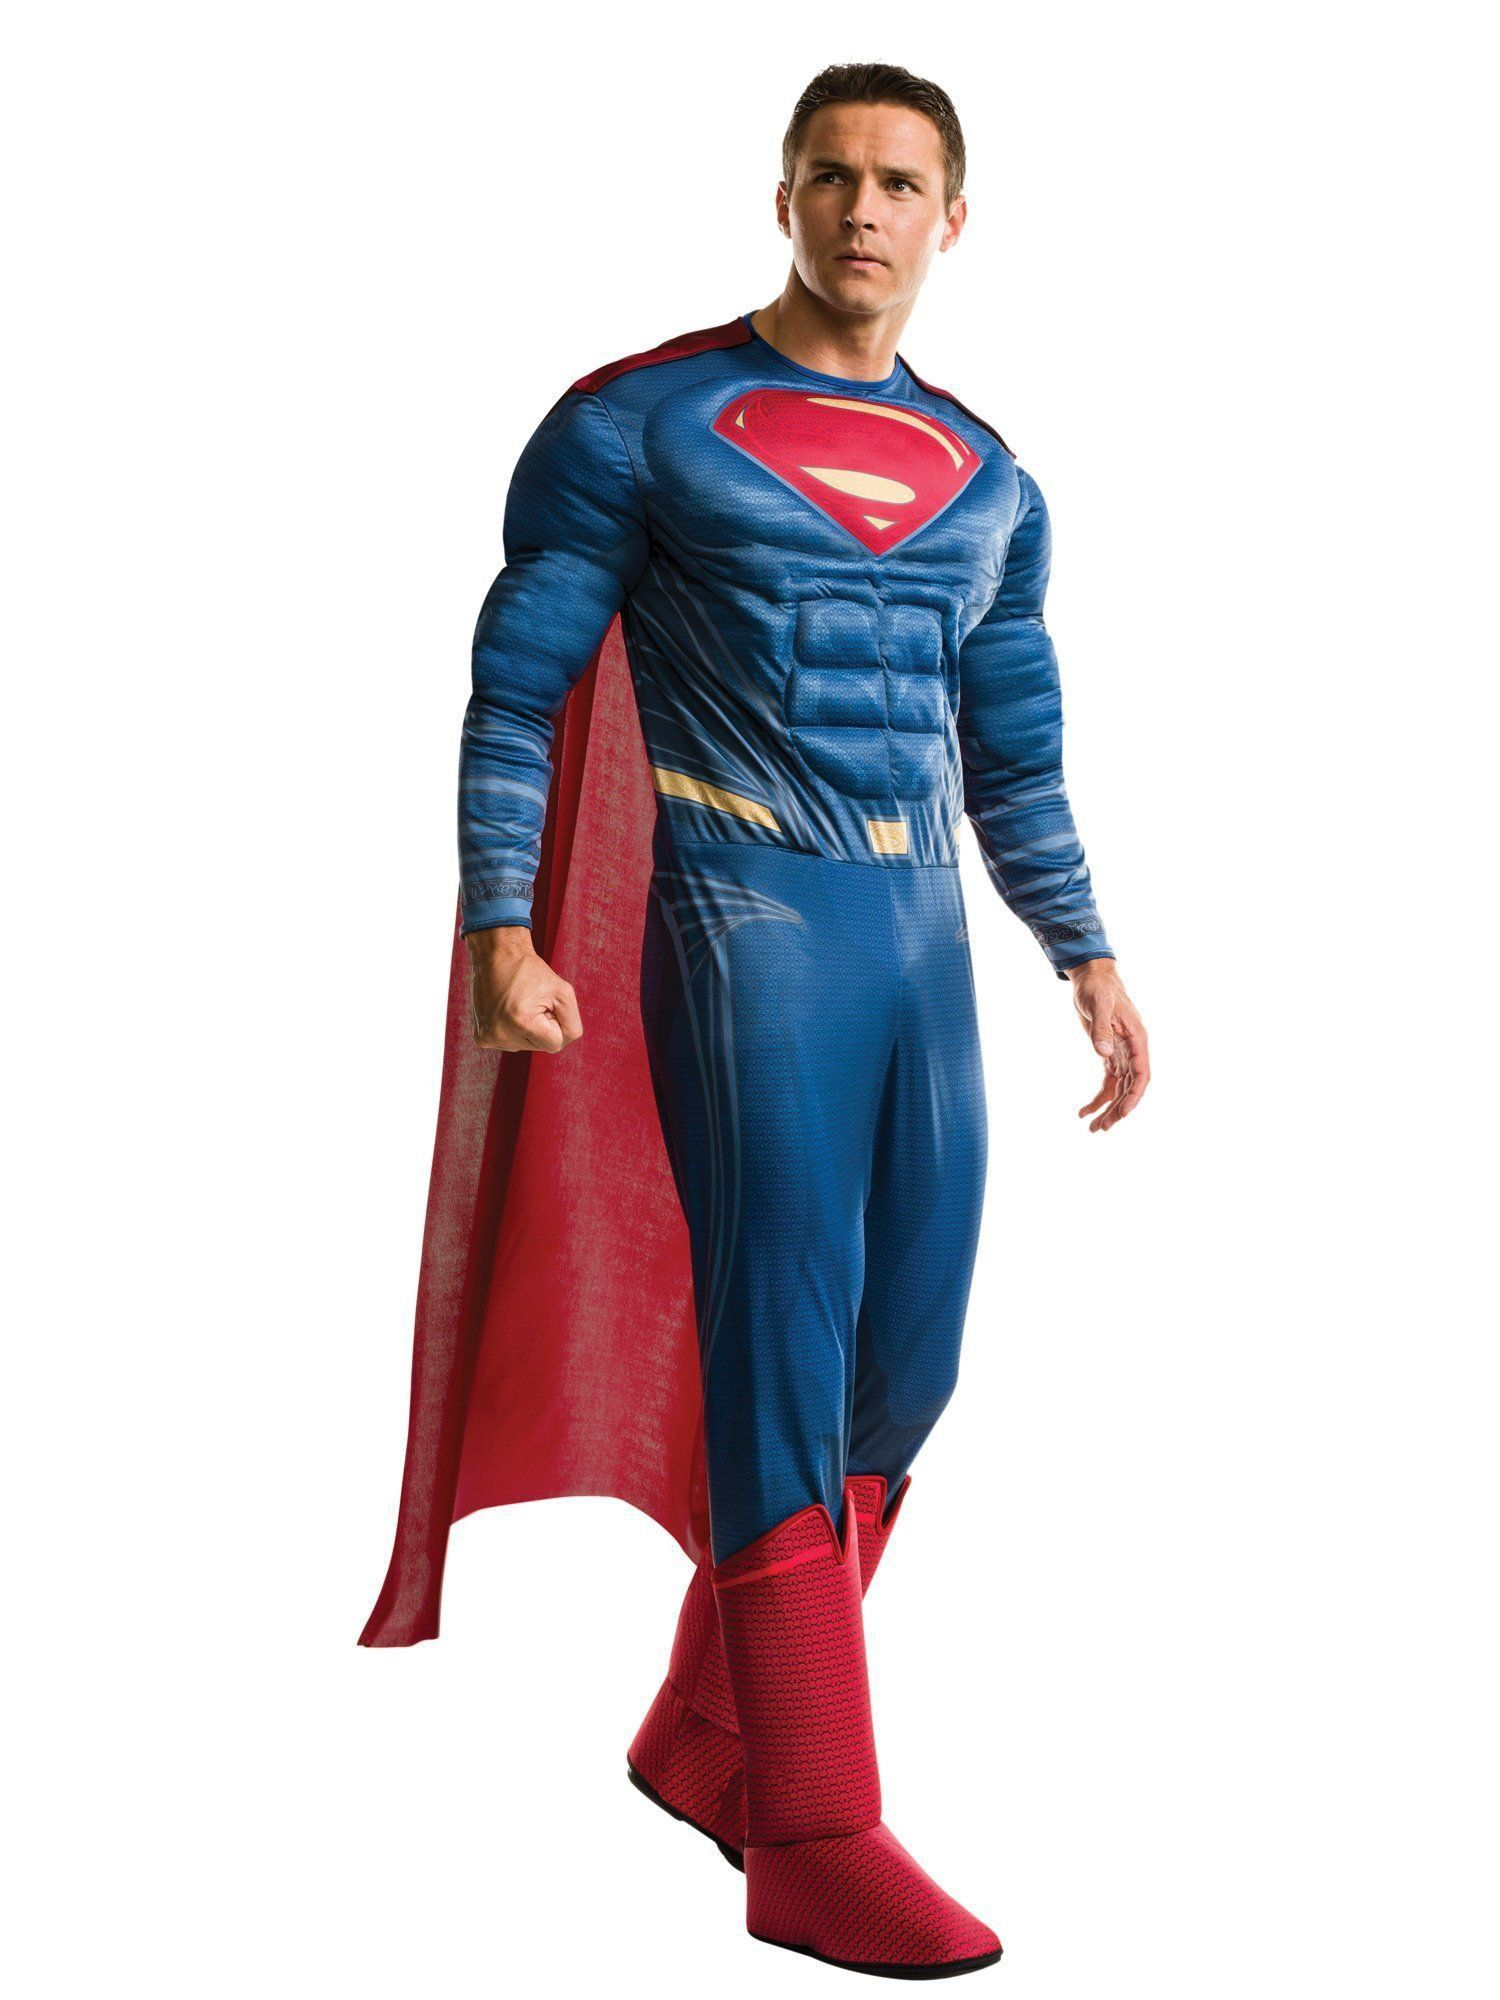 Fantasia Adulto Masculino Superman: Batman vs Superman (Deluxe) (Apenas Venda Online)